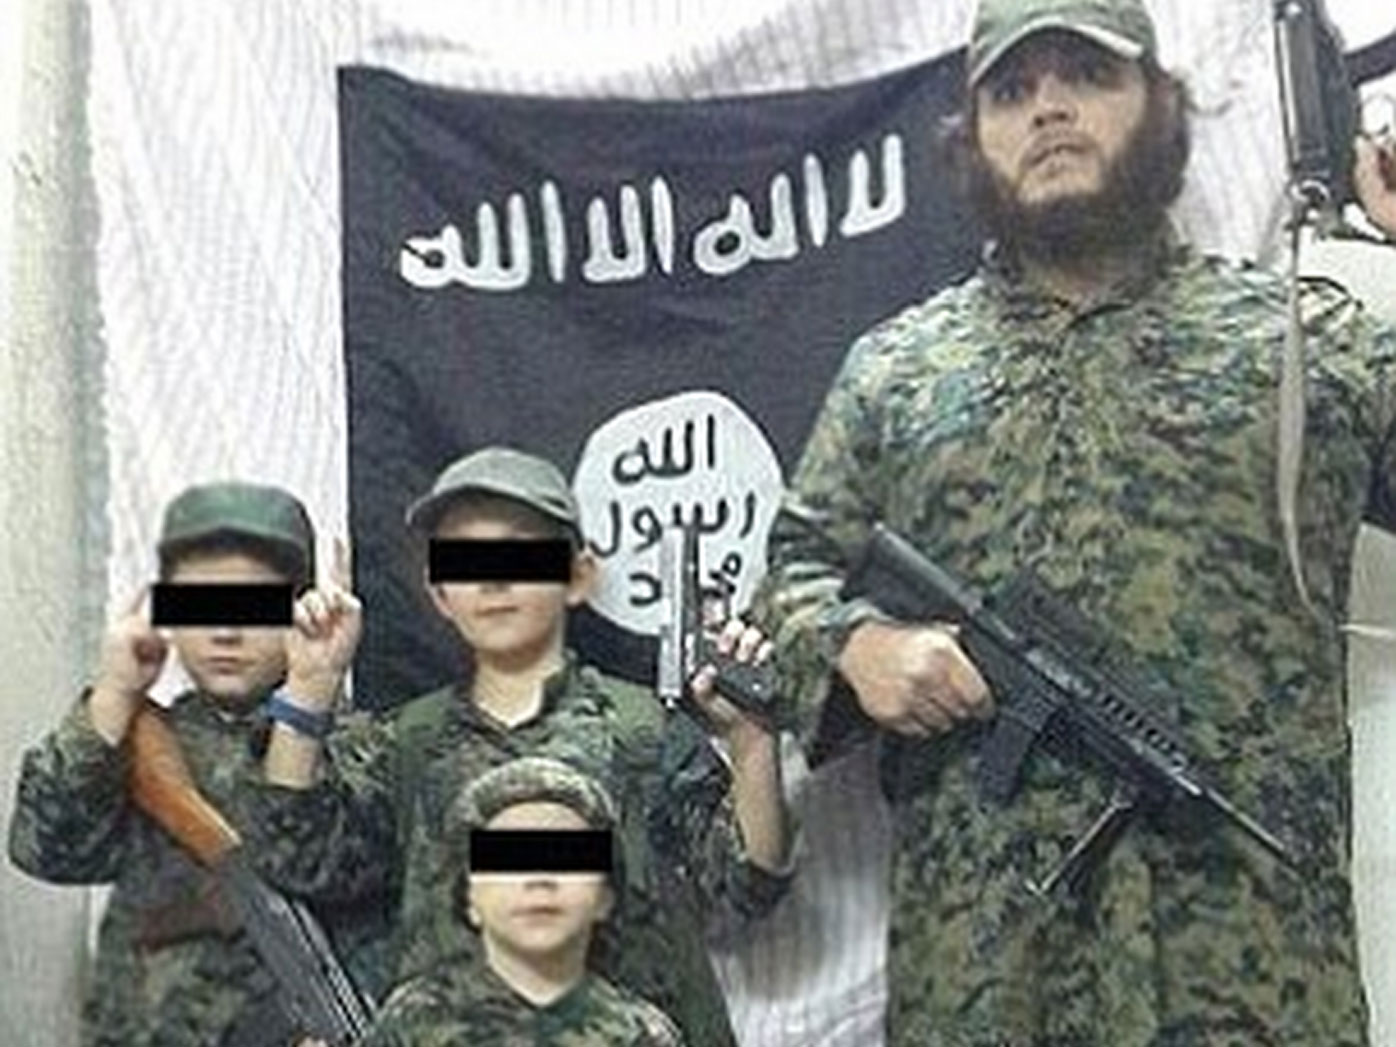 Sharrouf's mother-in-law heads to Syria to bring orphaned grandchildren home